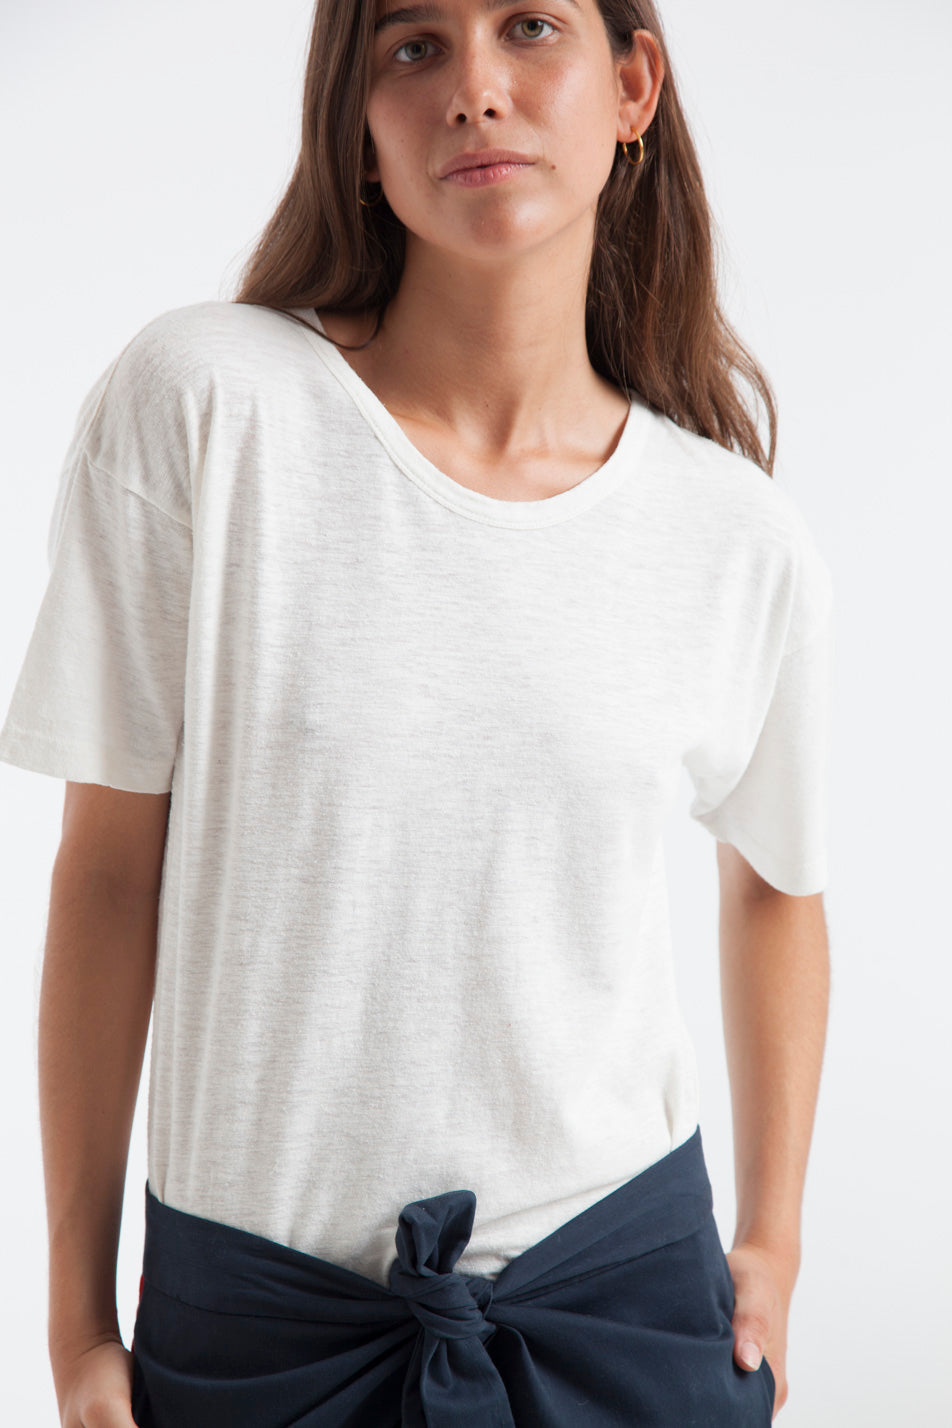 T-shirt en chanvre blanc - Thinking Mu num 0